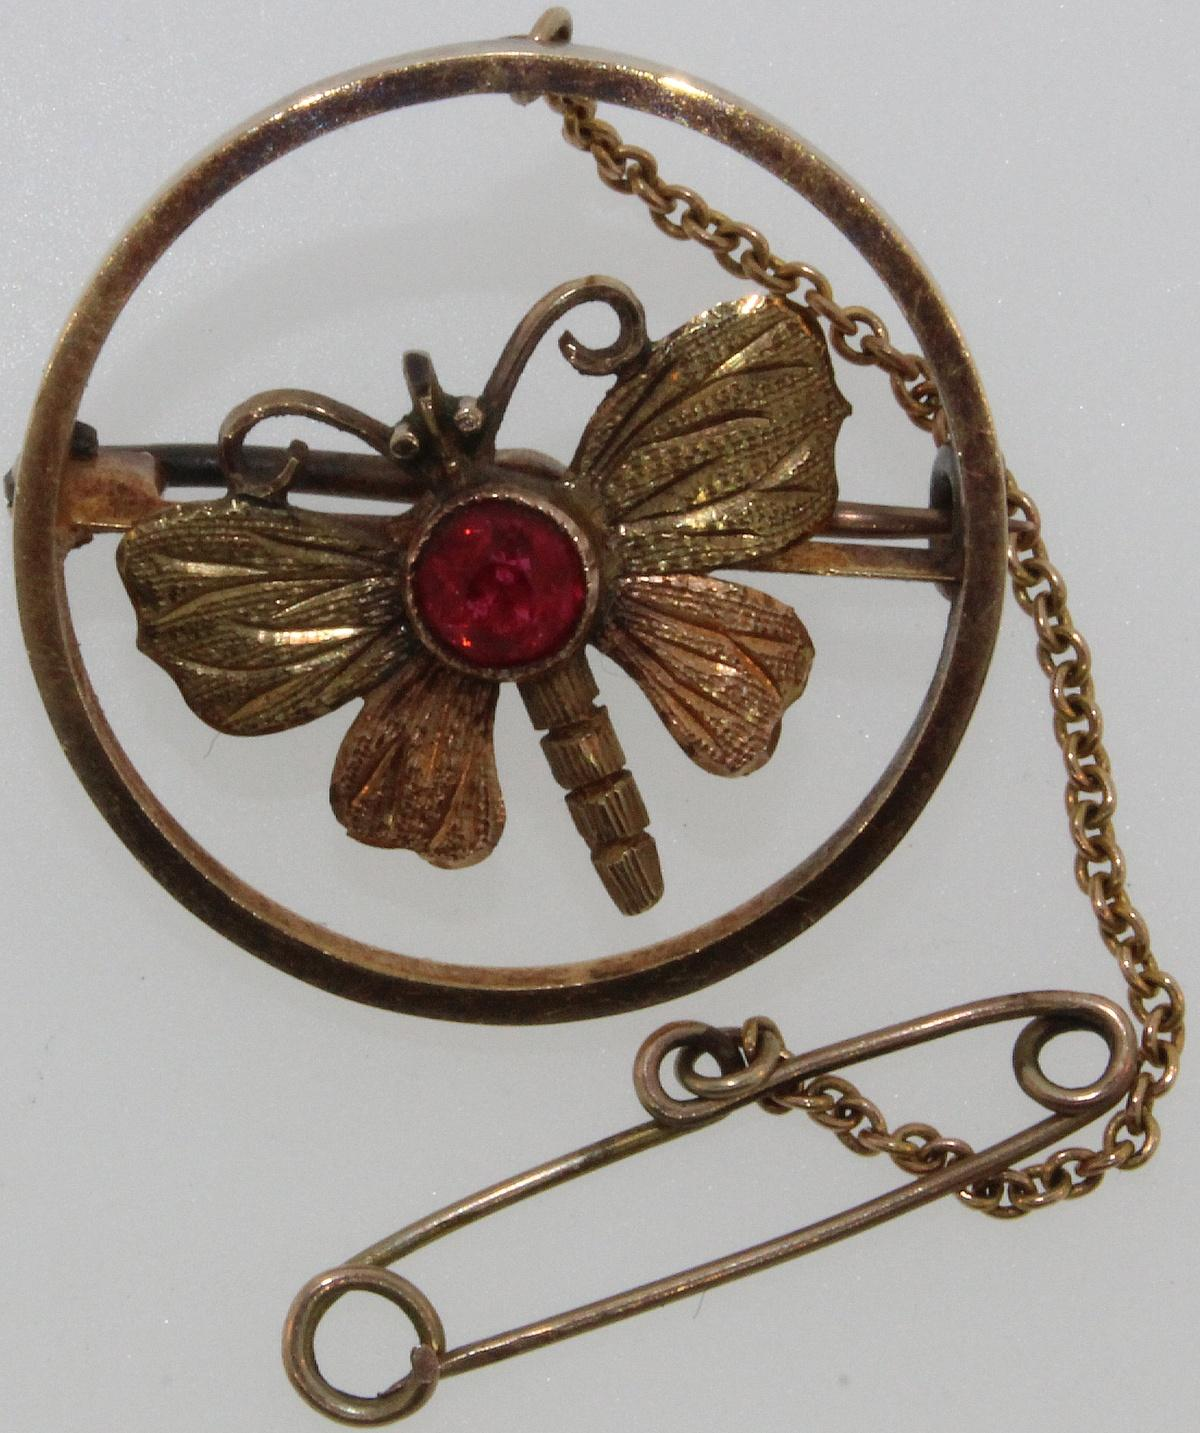 Vintage 14ct Gold Butterfly Brooch with Red Stone insert